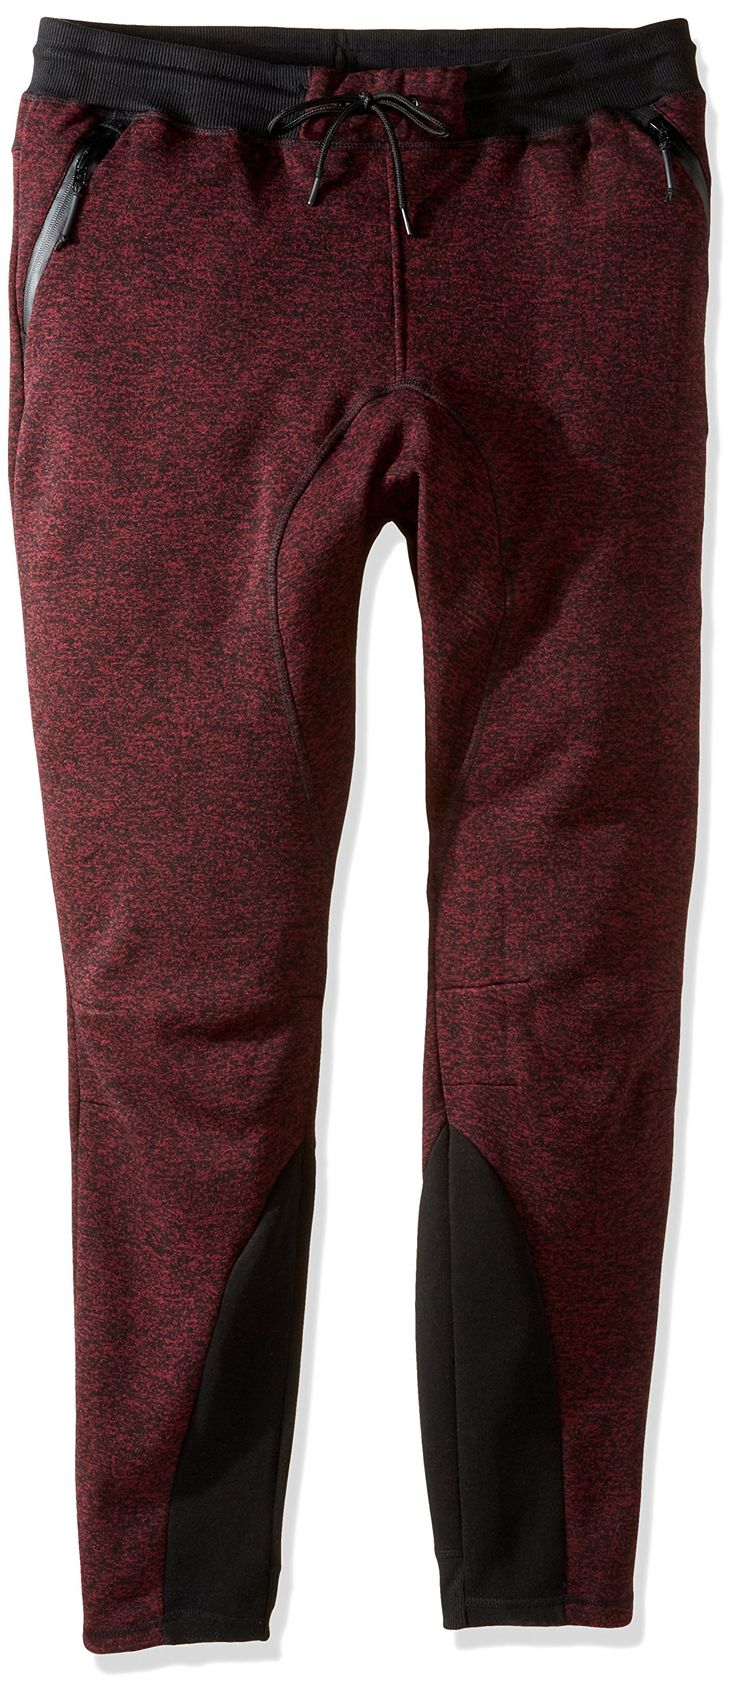 Southpole Men's Fleece Jogger Pants with Color Block Open Bottom, Marled Burgundy, Small